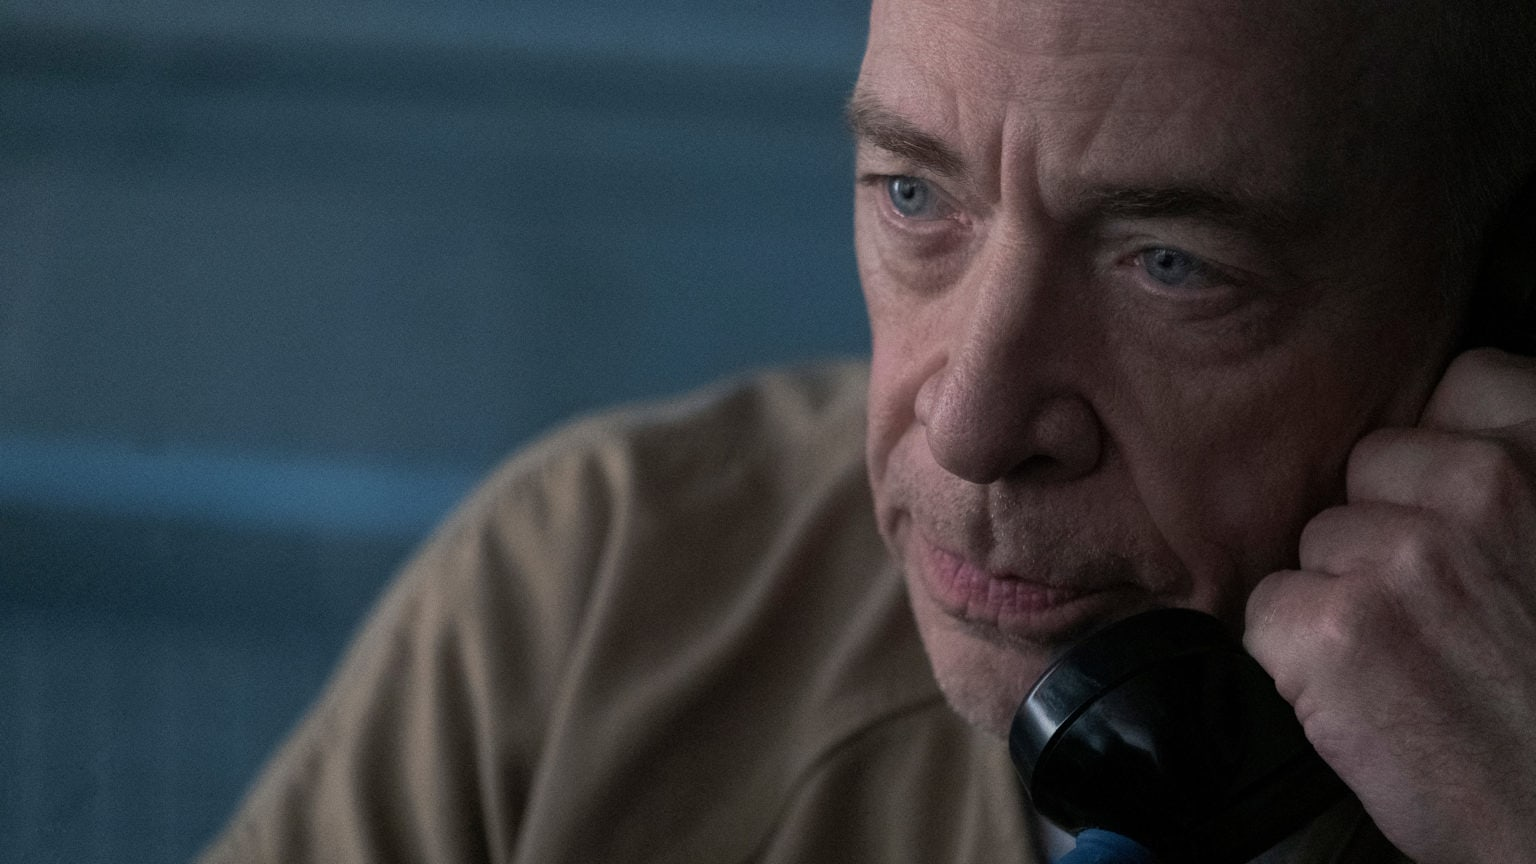 J.K. Simmons takes Defending Jacob to an unsettling new place.